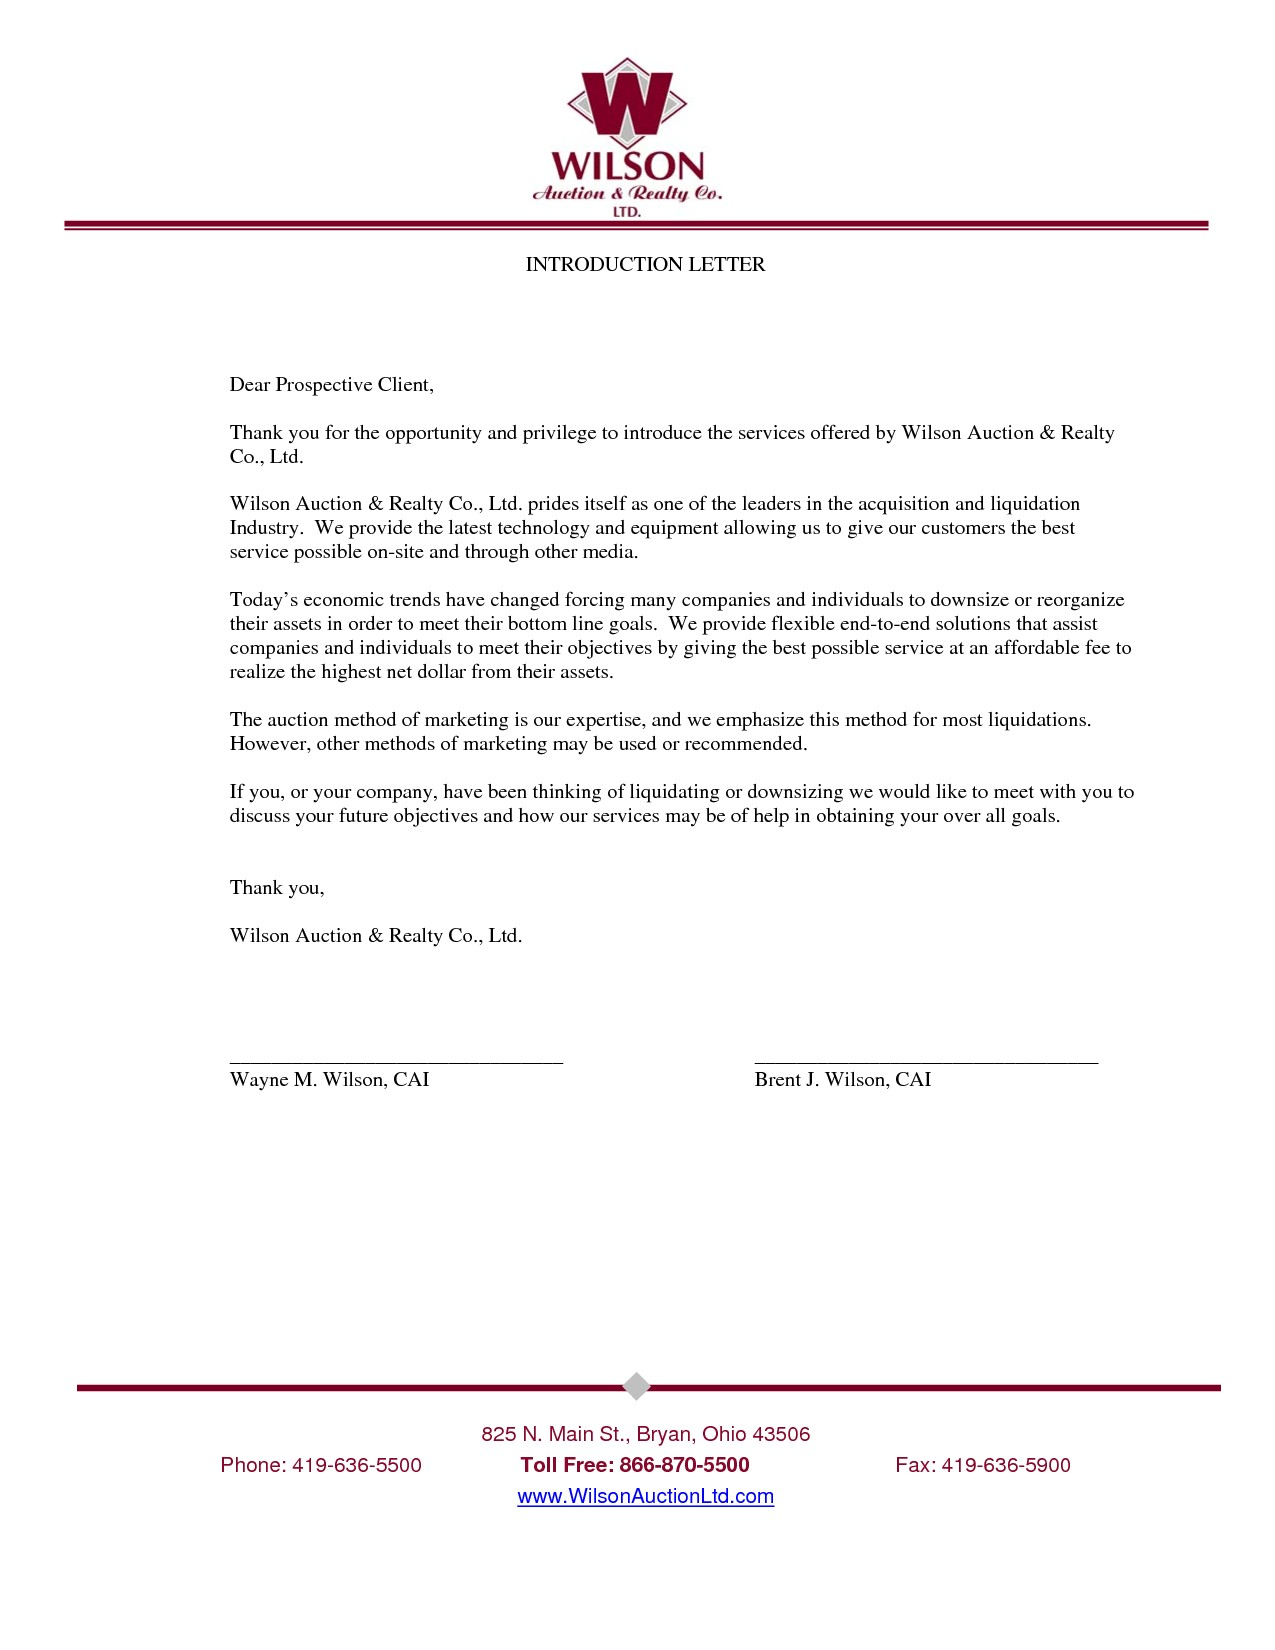 new business introduction letter sample Boat.jeremyeaton.co